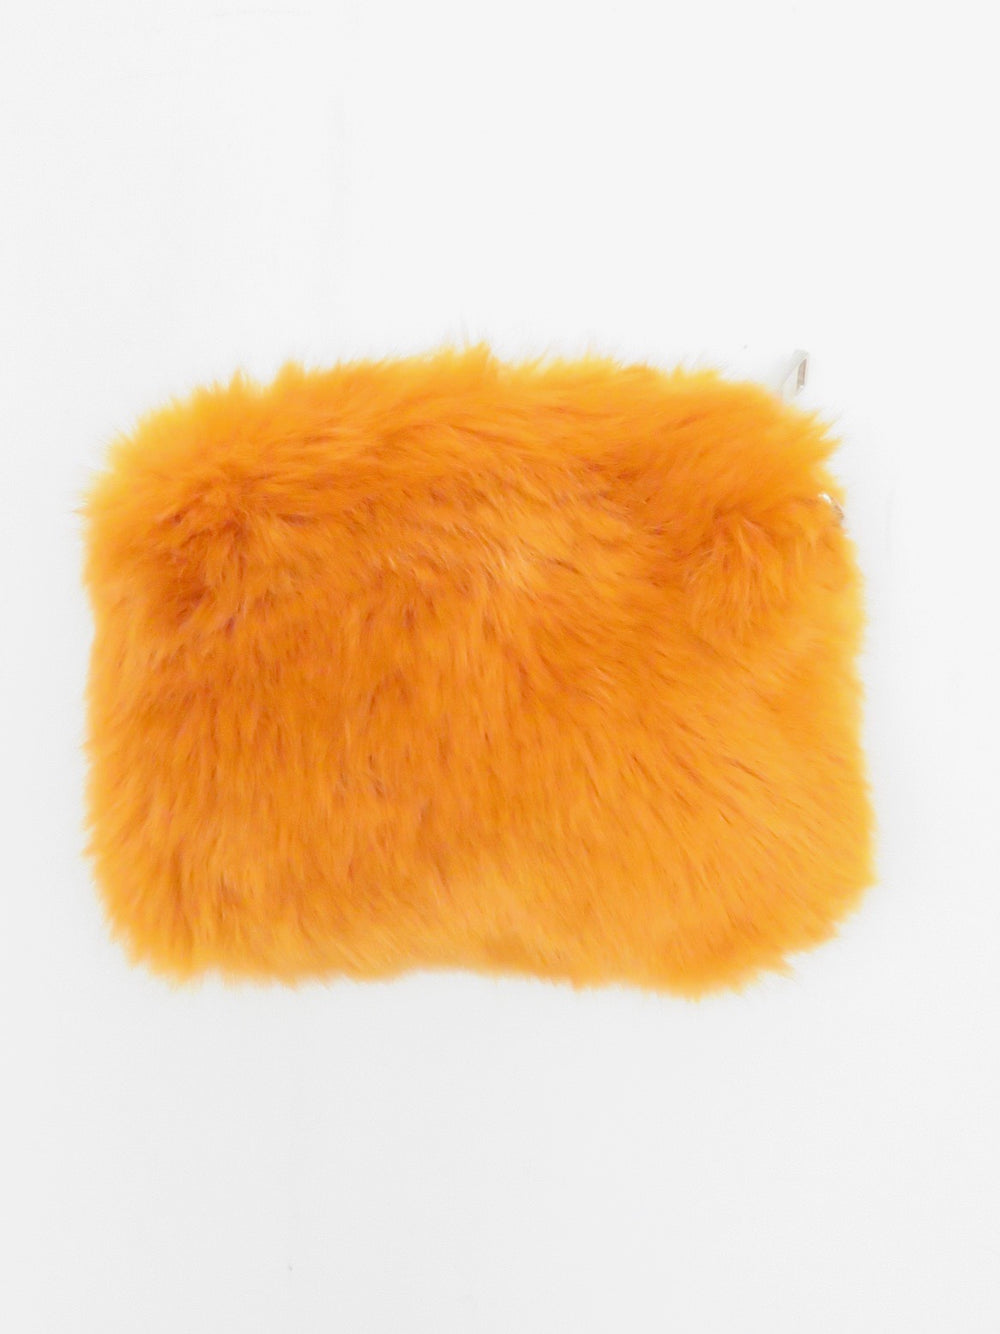 zara accessories rectangular pumpkin-colored faux fur pouch. features silver top-zip closure with side ring and soft, plush material. lined.